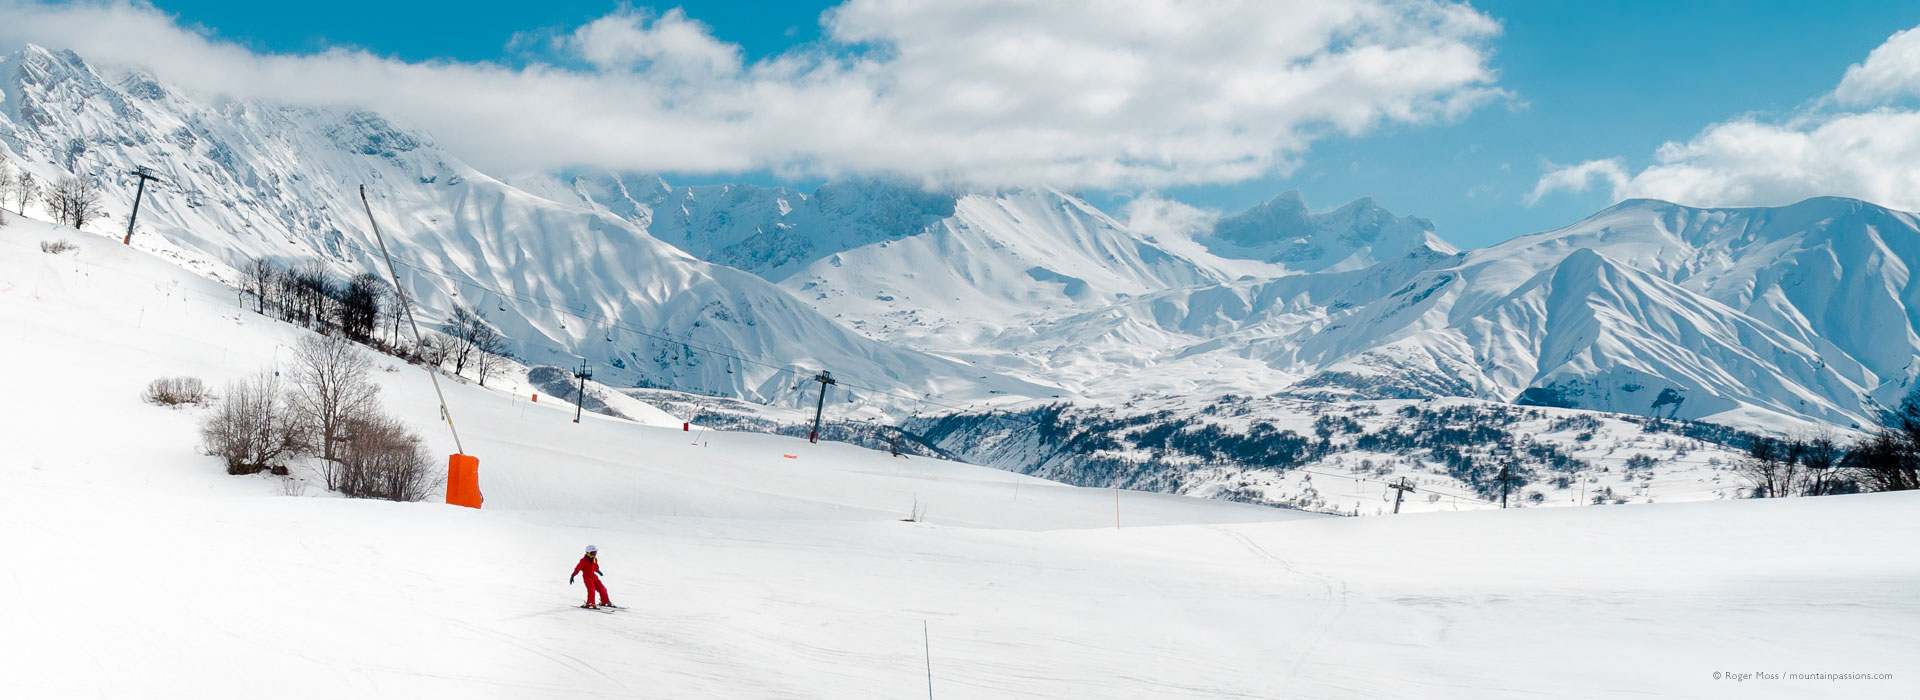 Wide view of child skier with big mountain backdrop at Albiez-Montrond.